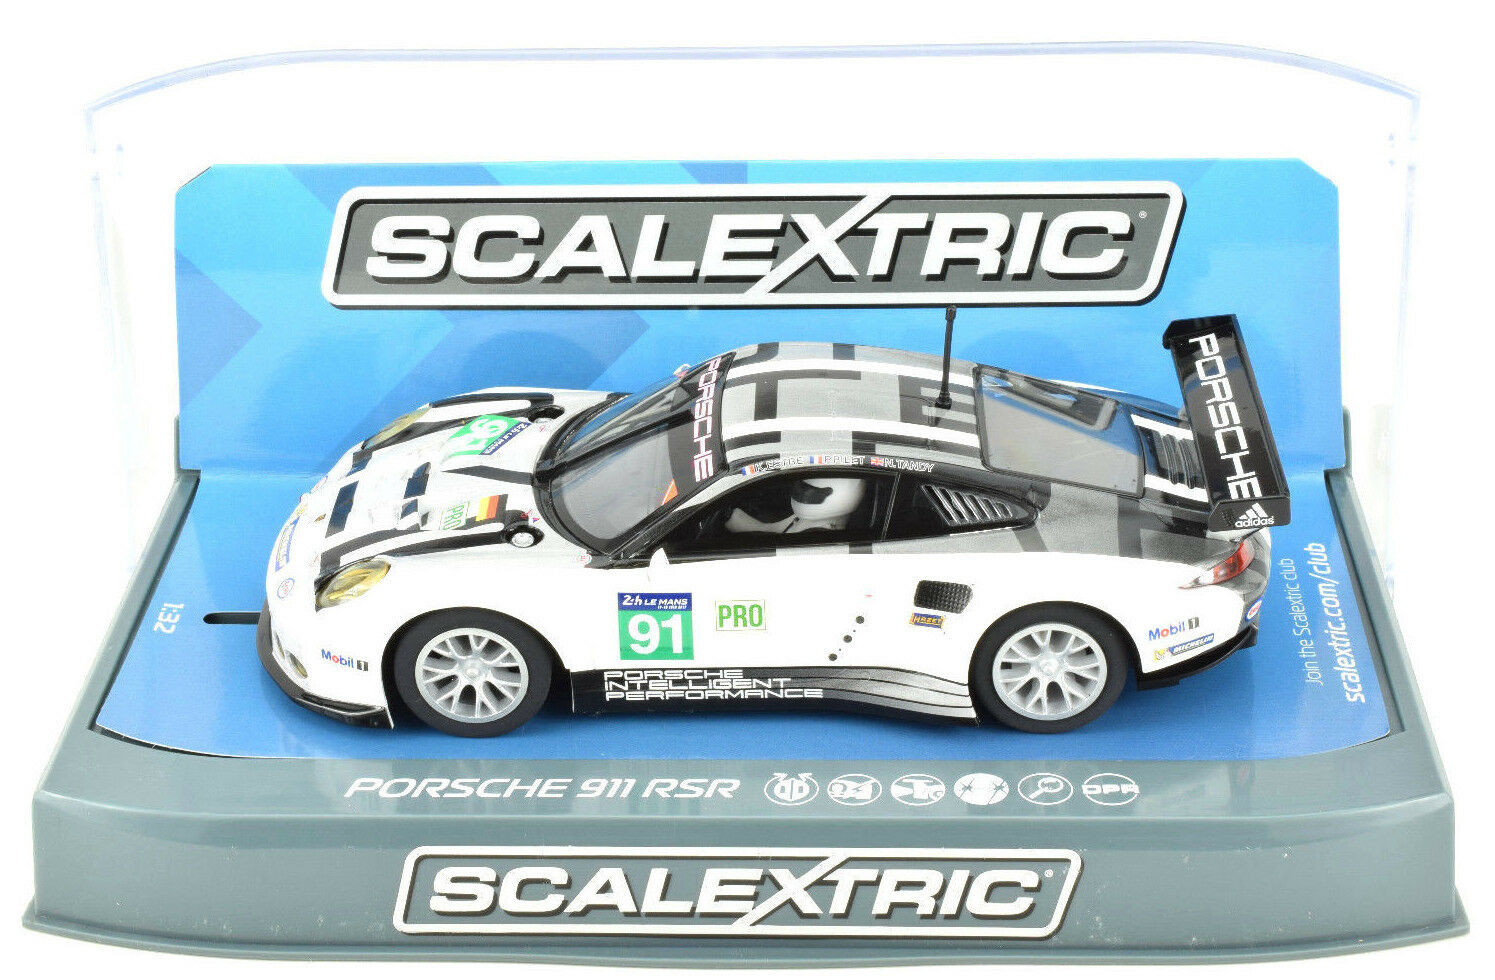 Scalextric Porsche 911 RSR - 2016 24h LeMans DPR W  Lights 1 32 Slot Car C3944